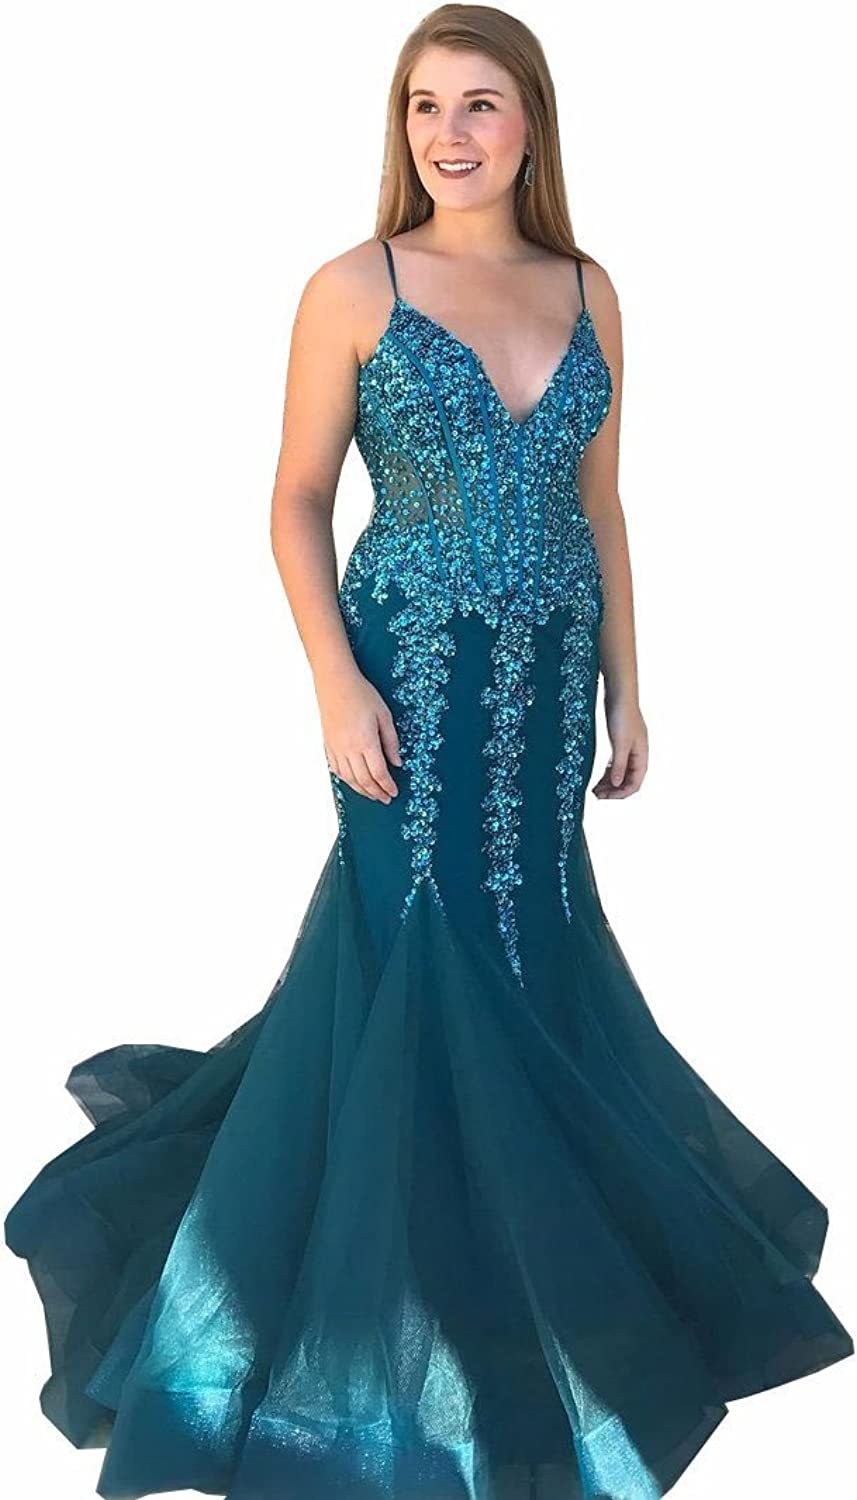 QiJunGe gold Appliqued Evening Gowns Sexy See Through Prom Dress with Straps